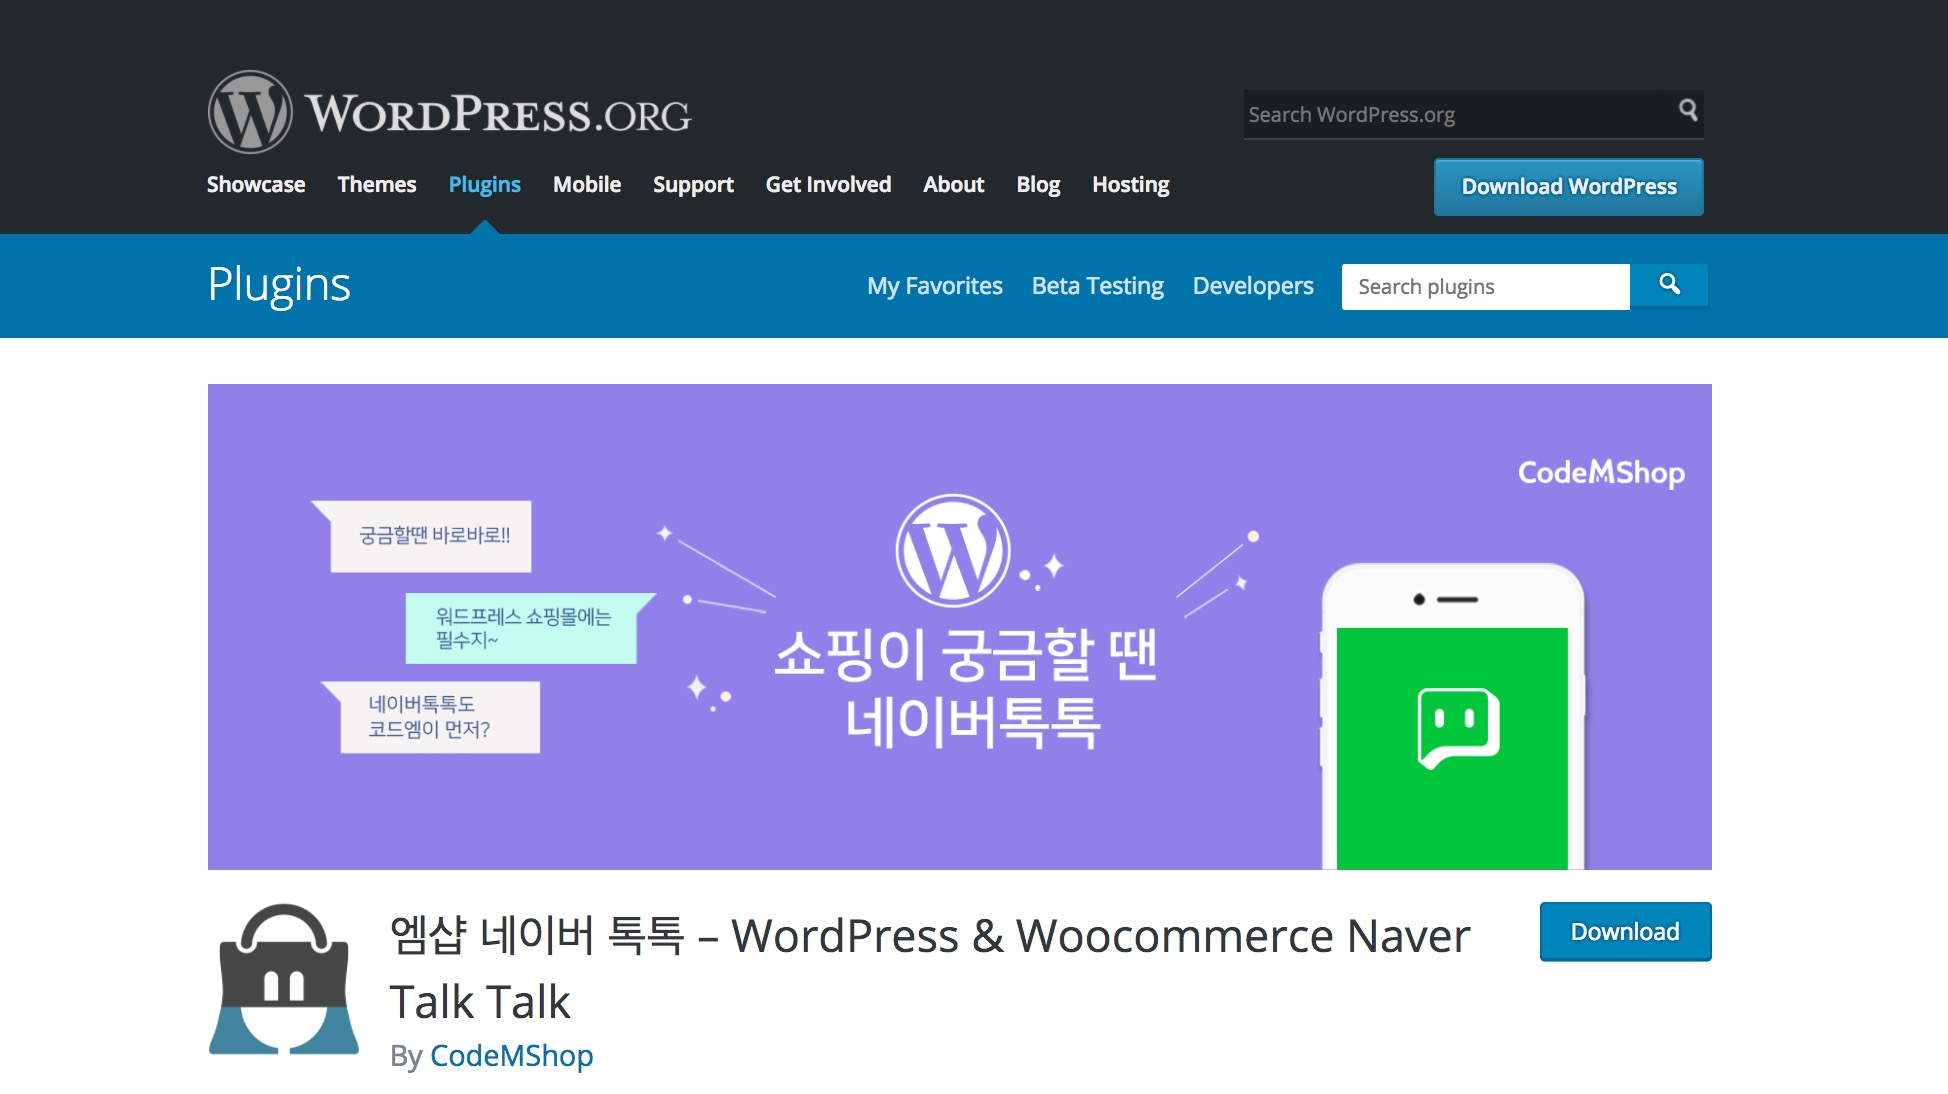 wordpress-live-chat-naver-talktalk-codemshop-7